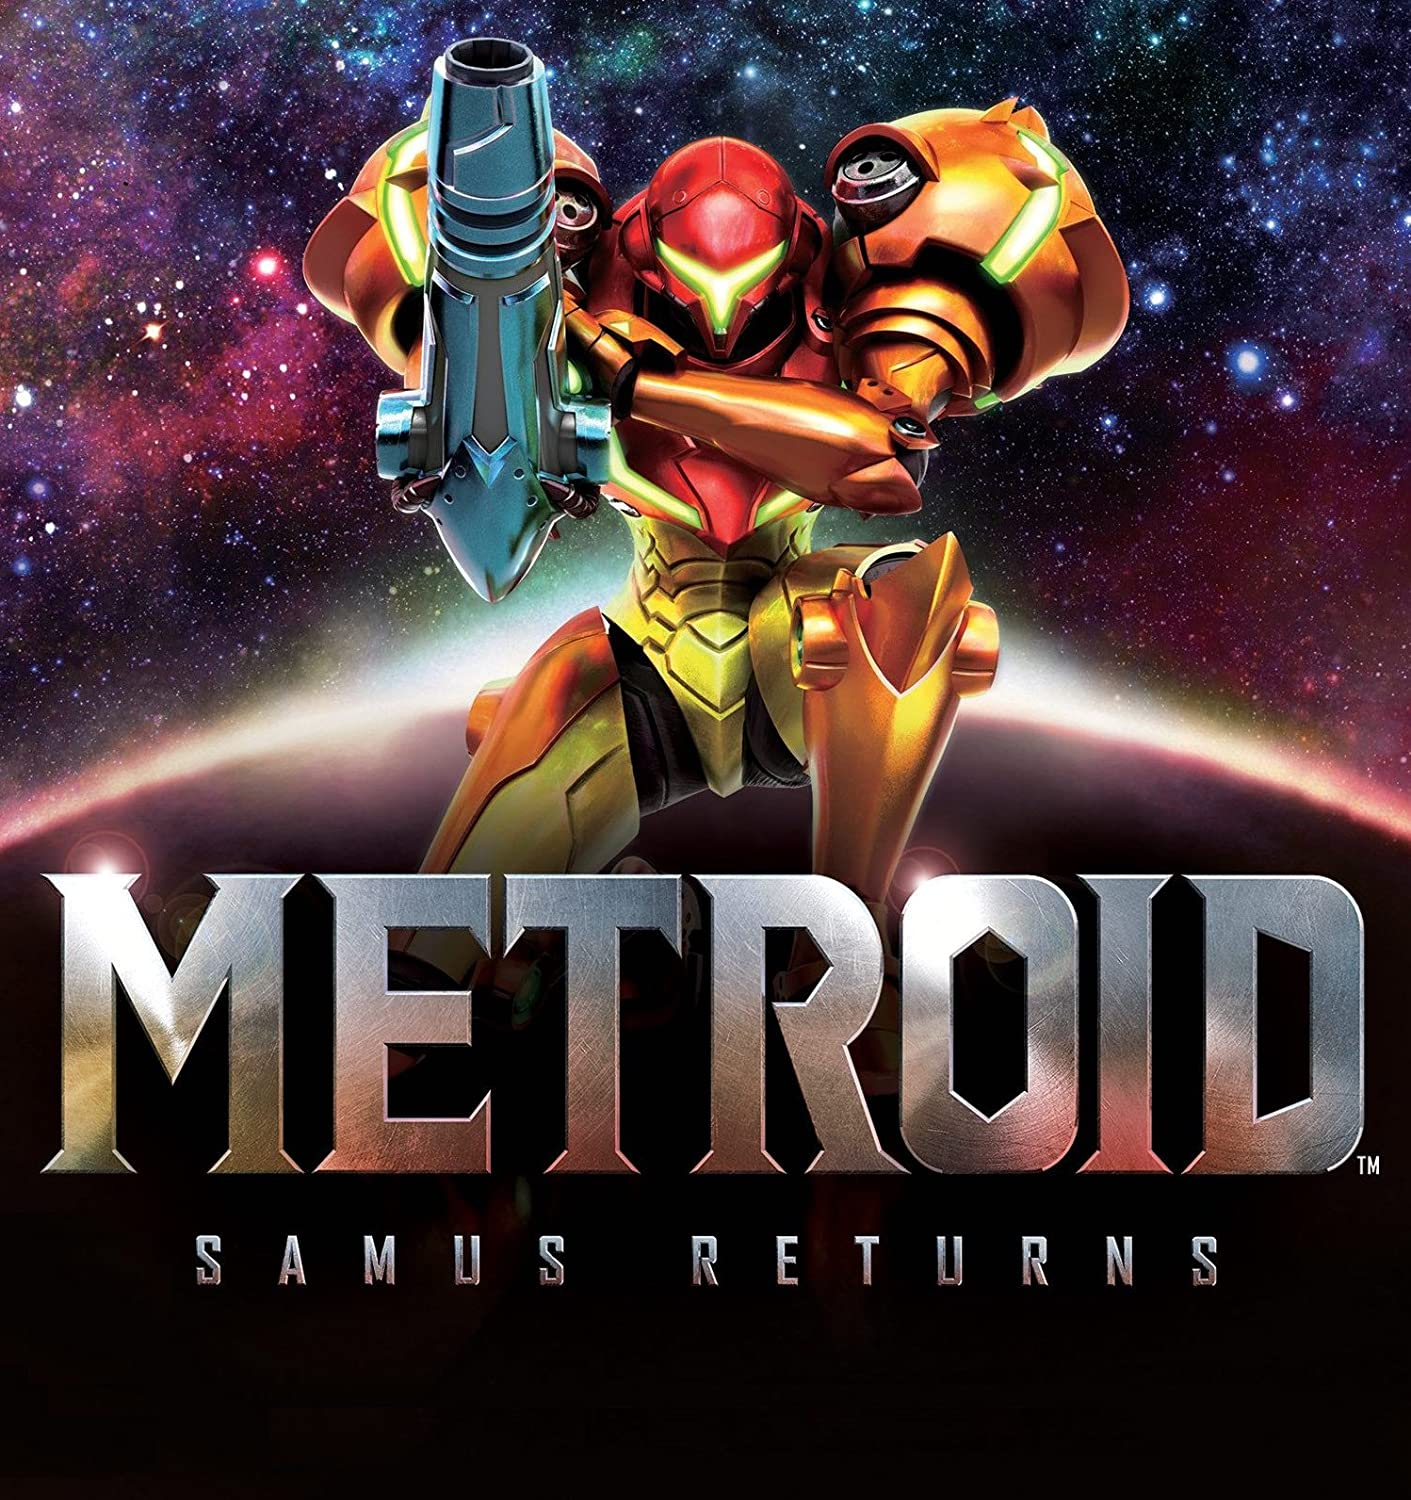 Metroid: Samus Returns [Nintendo 3DS - Version digitale/code]